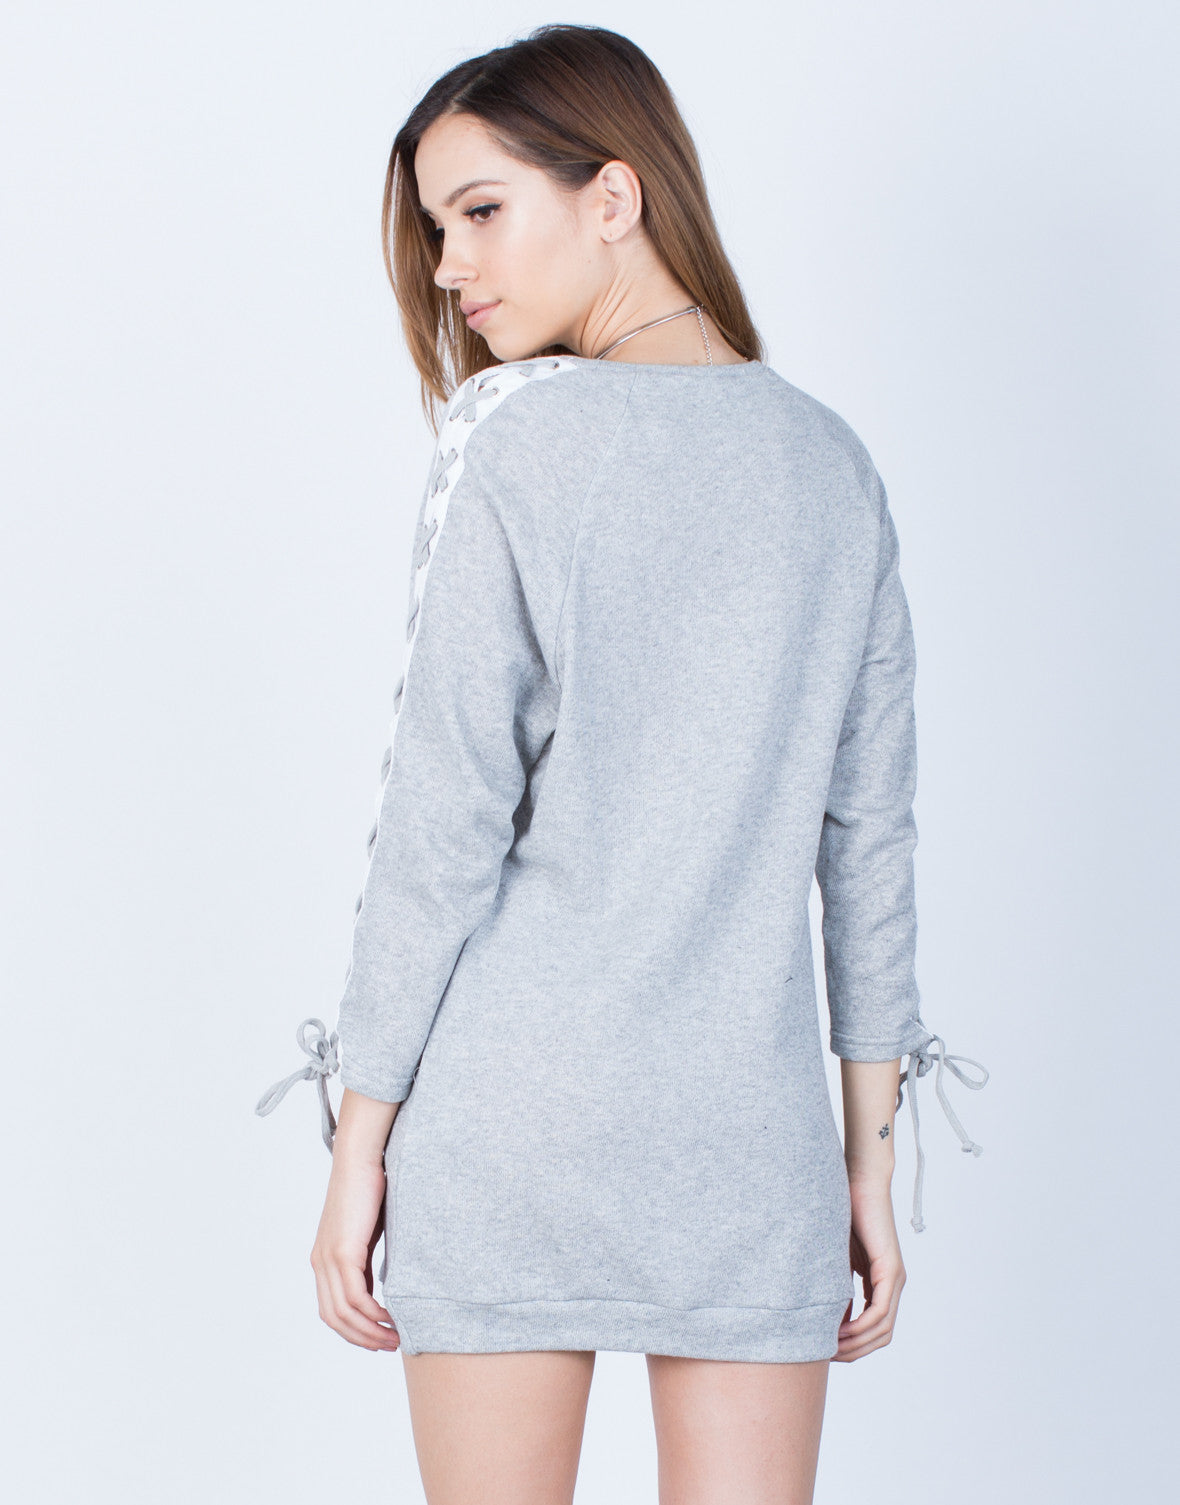 Back View of Lace-Up Sleeves Dress